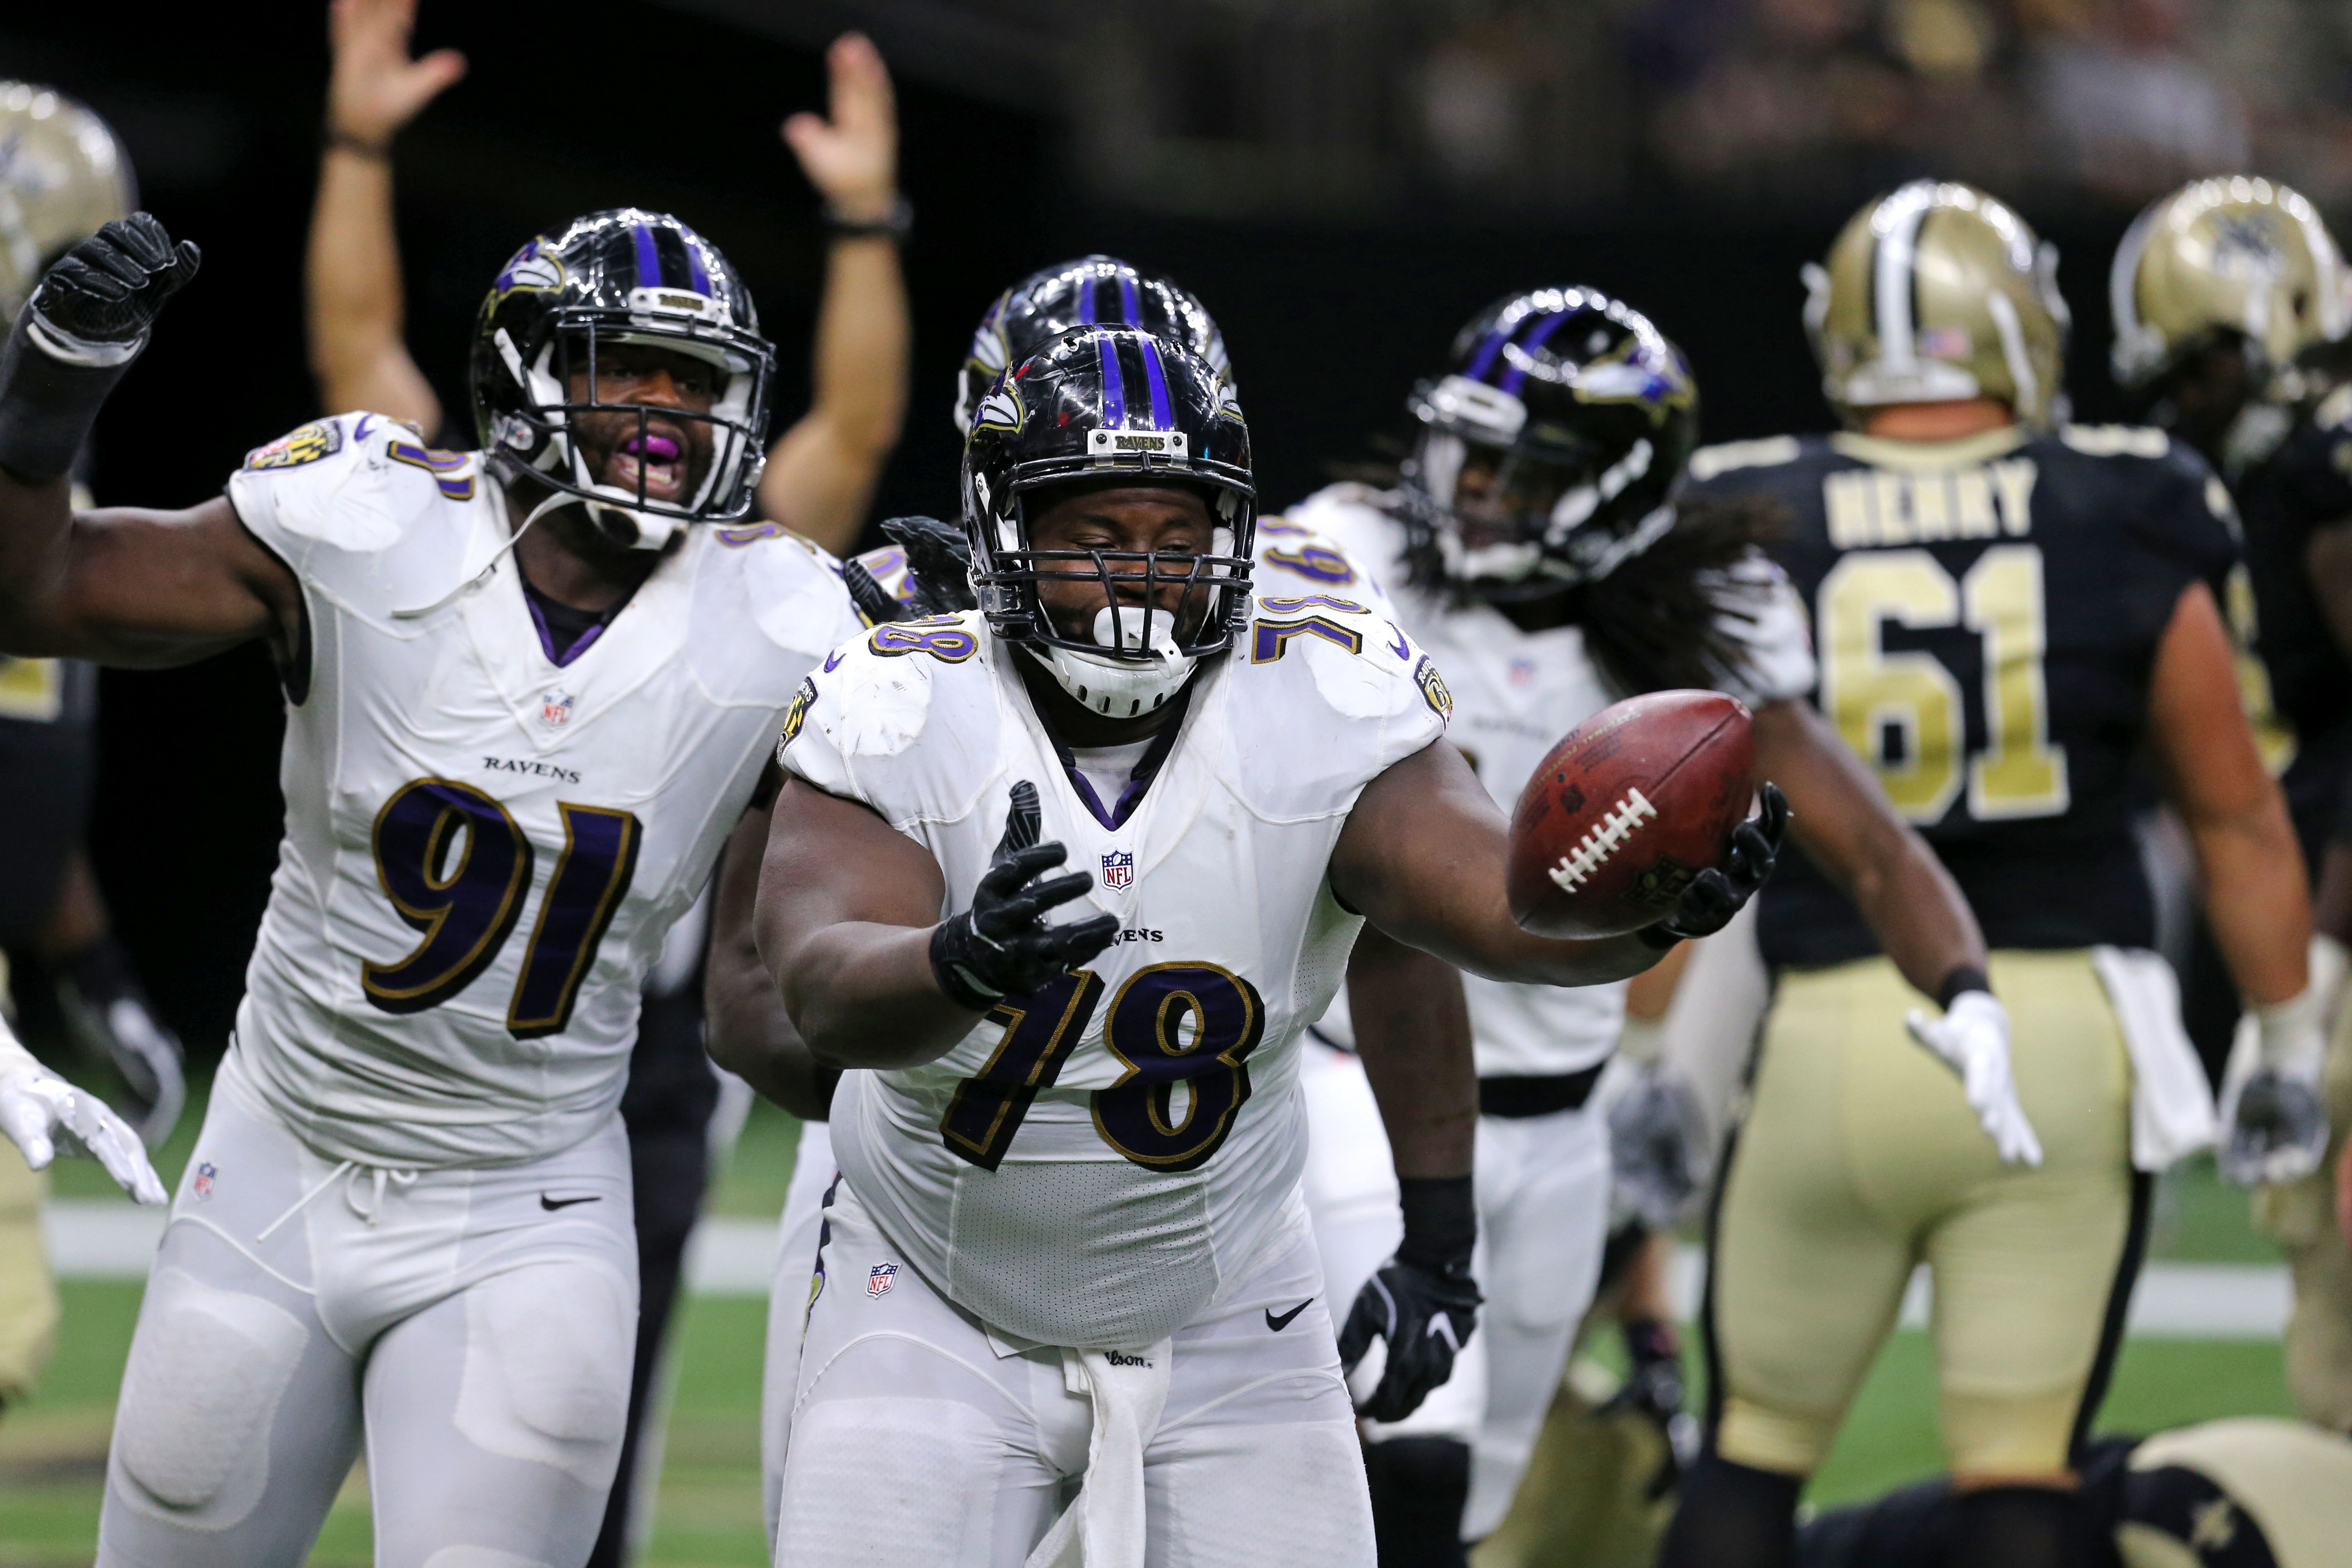 Baltimore Ravens defensive tackle Michael Pierce (78) celebrates after recovering a fumble in the end zone by New Orleans Saints quarterback Drew Brees for a touchdown in the first half of a pre-season NFL football game in New Orleans, Thursday, Sept. 1,